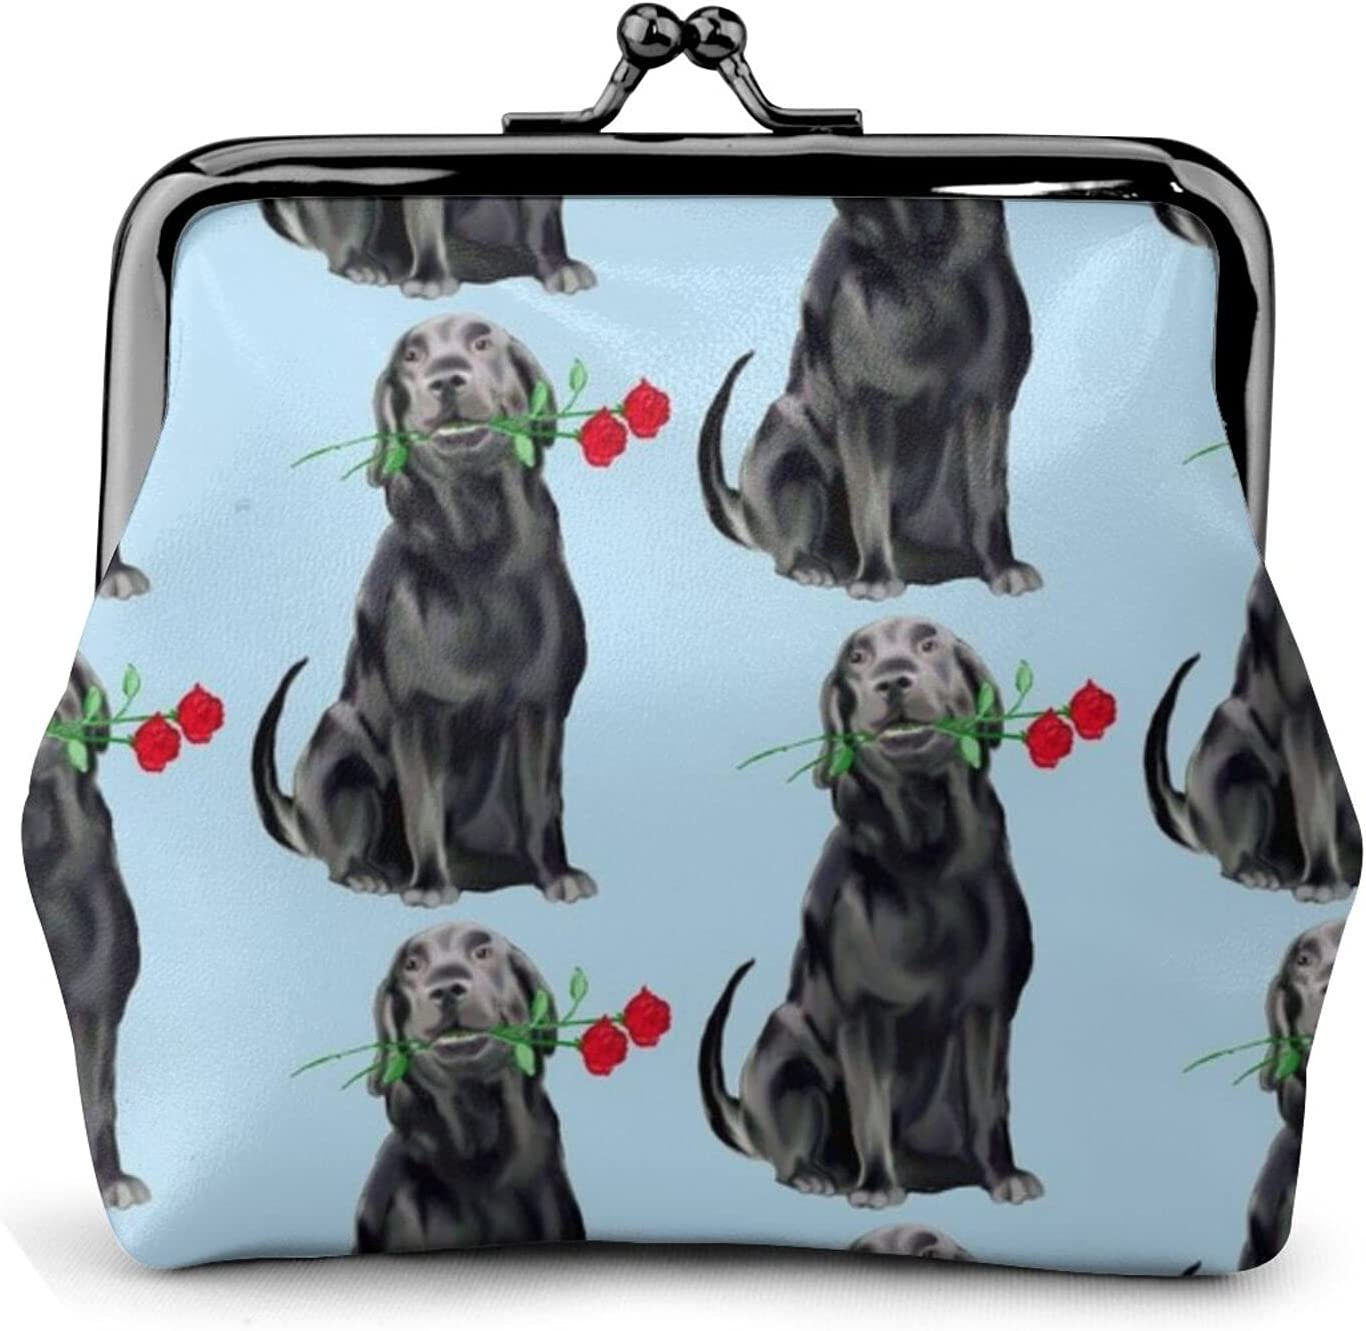 Black Lab And 558 Leather Coin Purse Kiss Lock Change Pouch Vintage Clasp Closure Buckle Wallet Small Women Gift